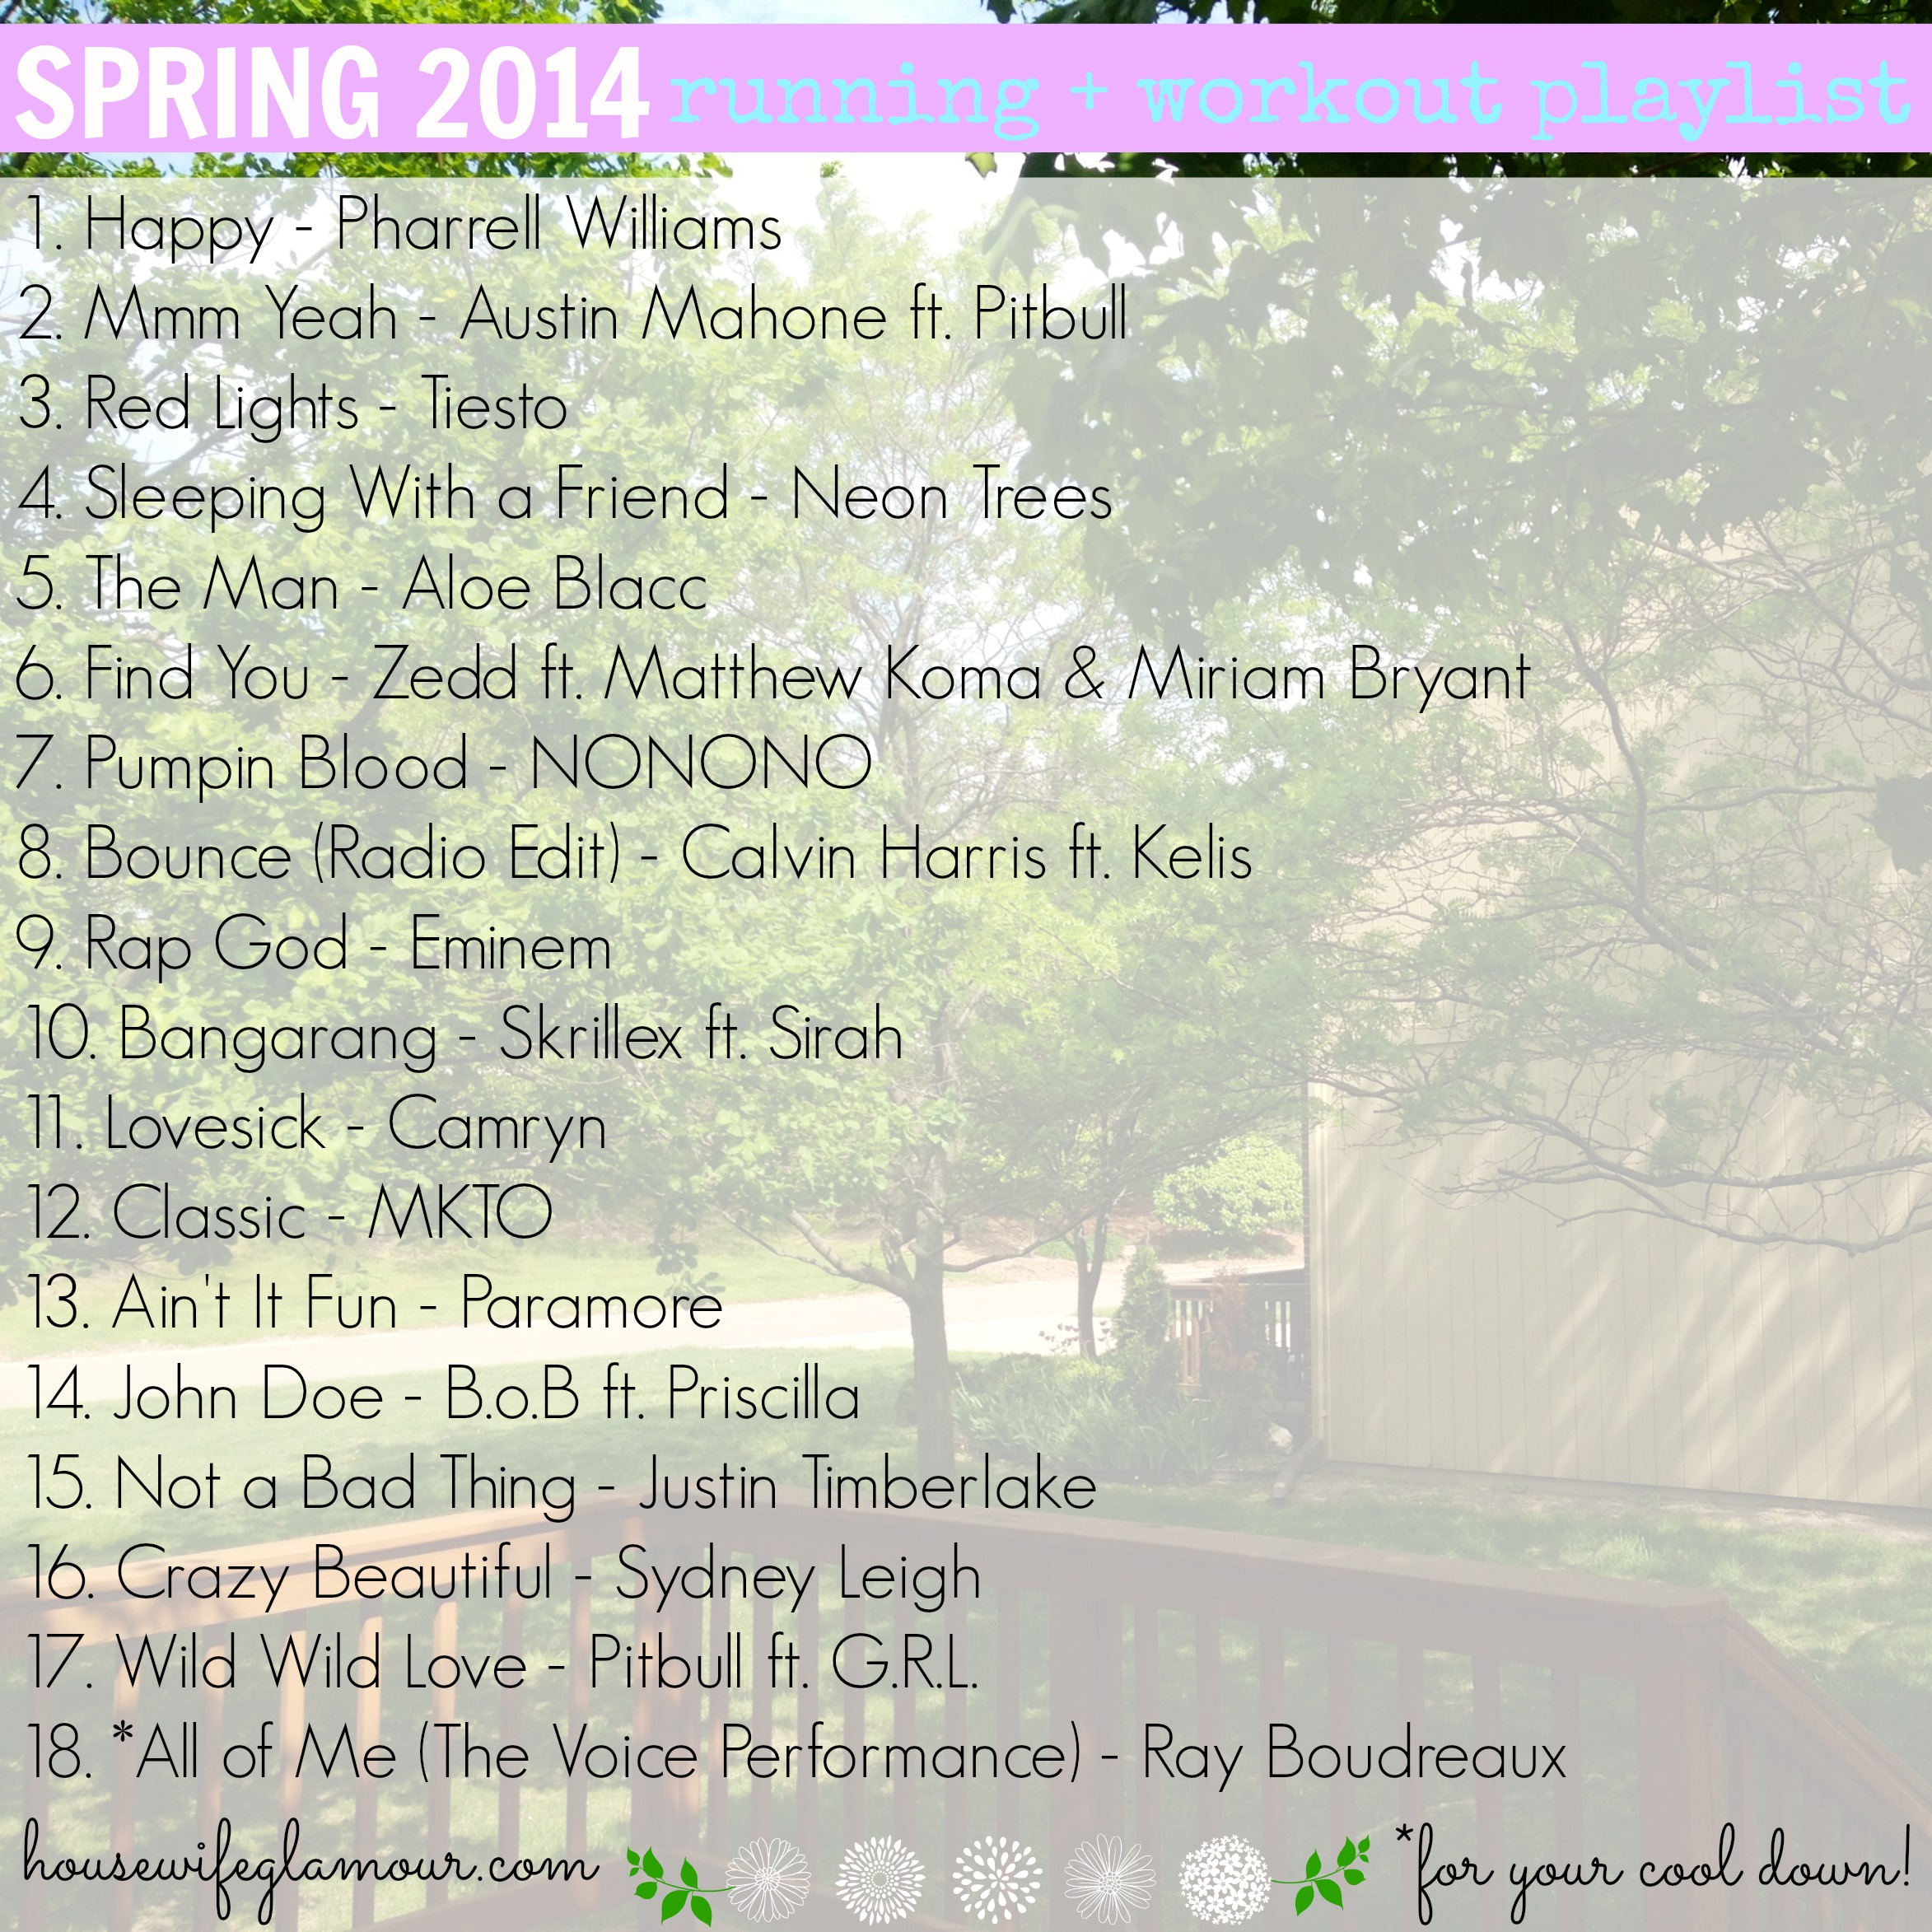 Spring 2014 Running Workout Playlist